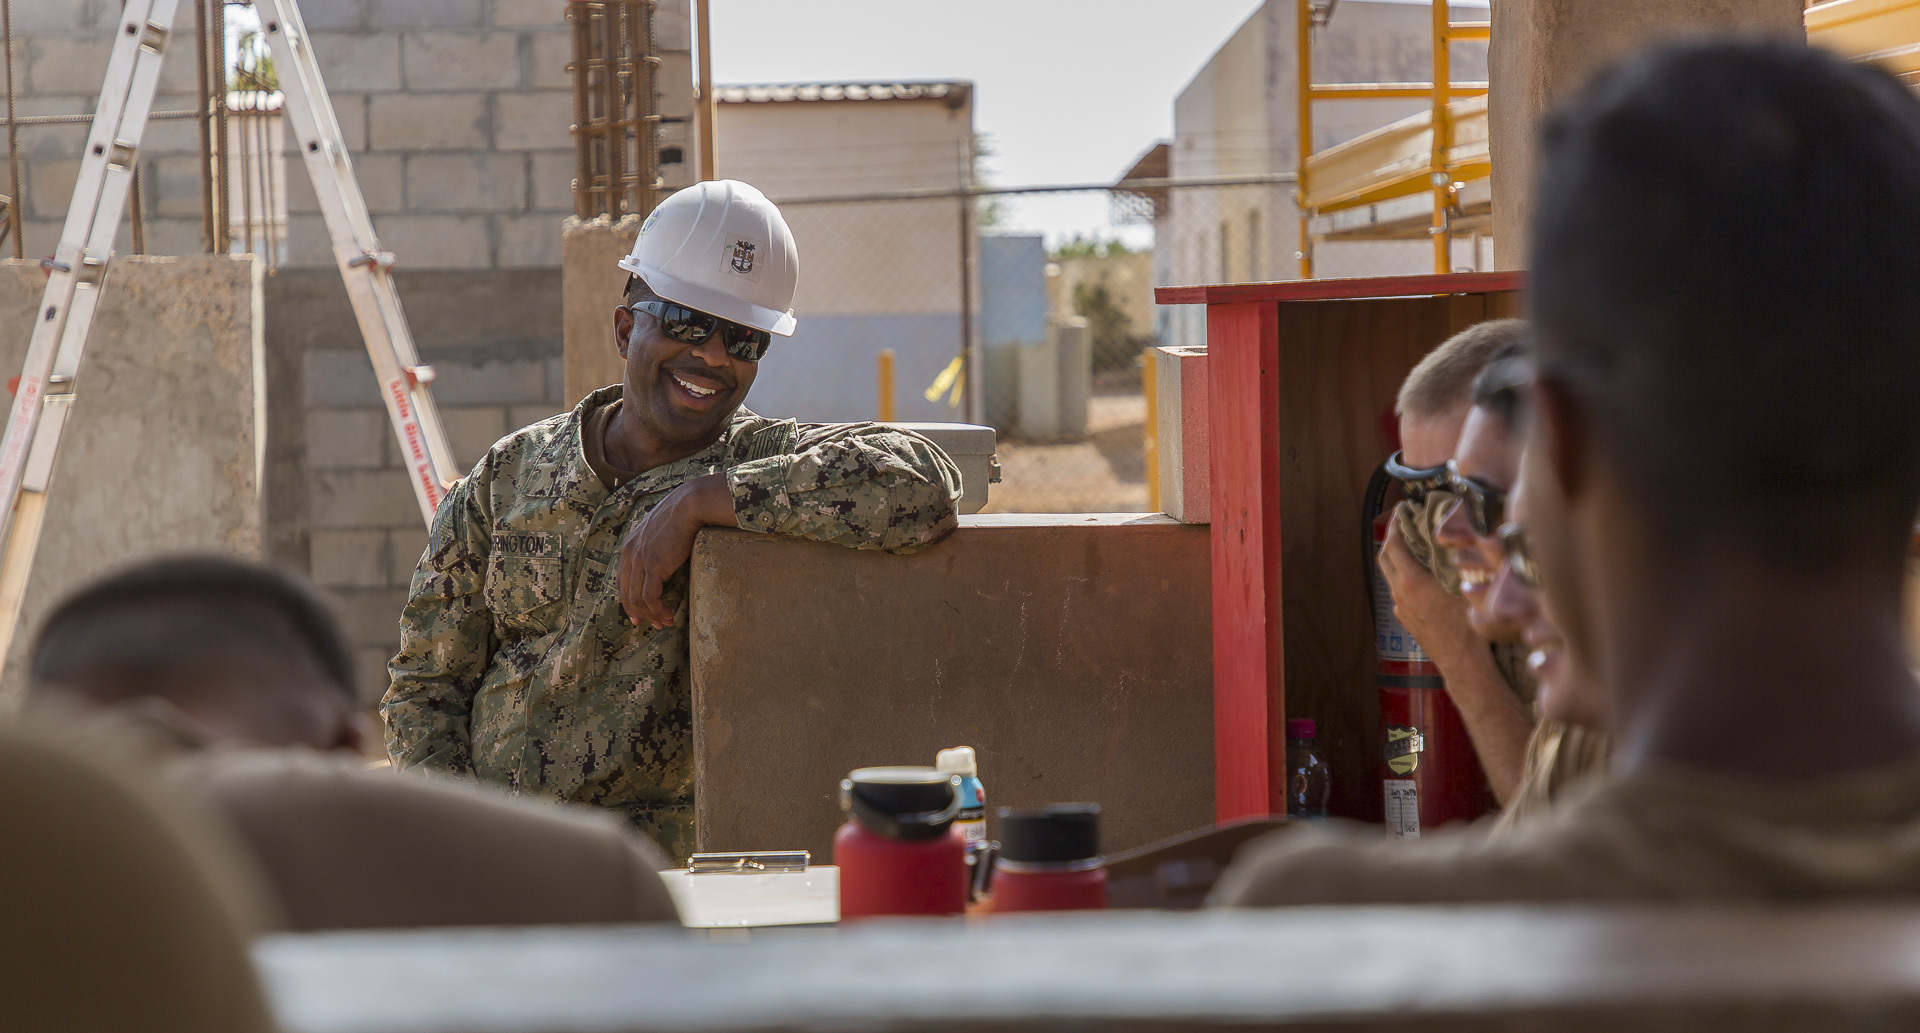 U.S. Navy Command Master Chief Derrick Arrington, Naval Mobile Construction Battalion 1 (NMCB 1) talks with Seabees assigned to a project site in Ali Oune, Djibouti, Sept. 19, 2018. NMCB 1 Detachment Horn of Africa is building a medical facility in Ali Oune in support of the Ministry of Health for Djibouti. (U.S. Air National Guard photo by Master Sgt. Andrew Sinclair)